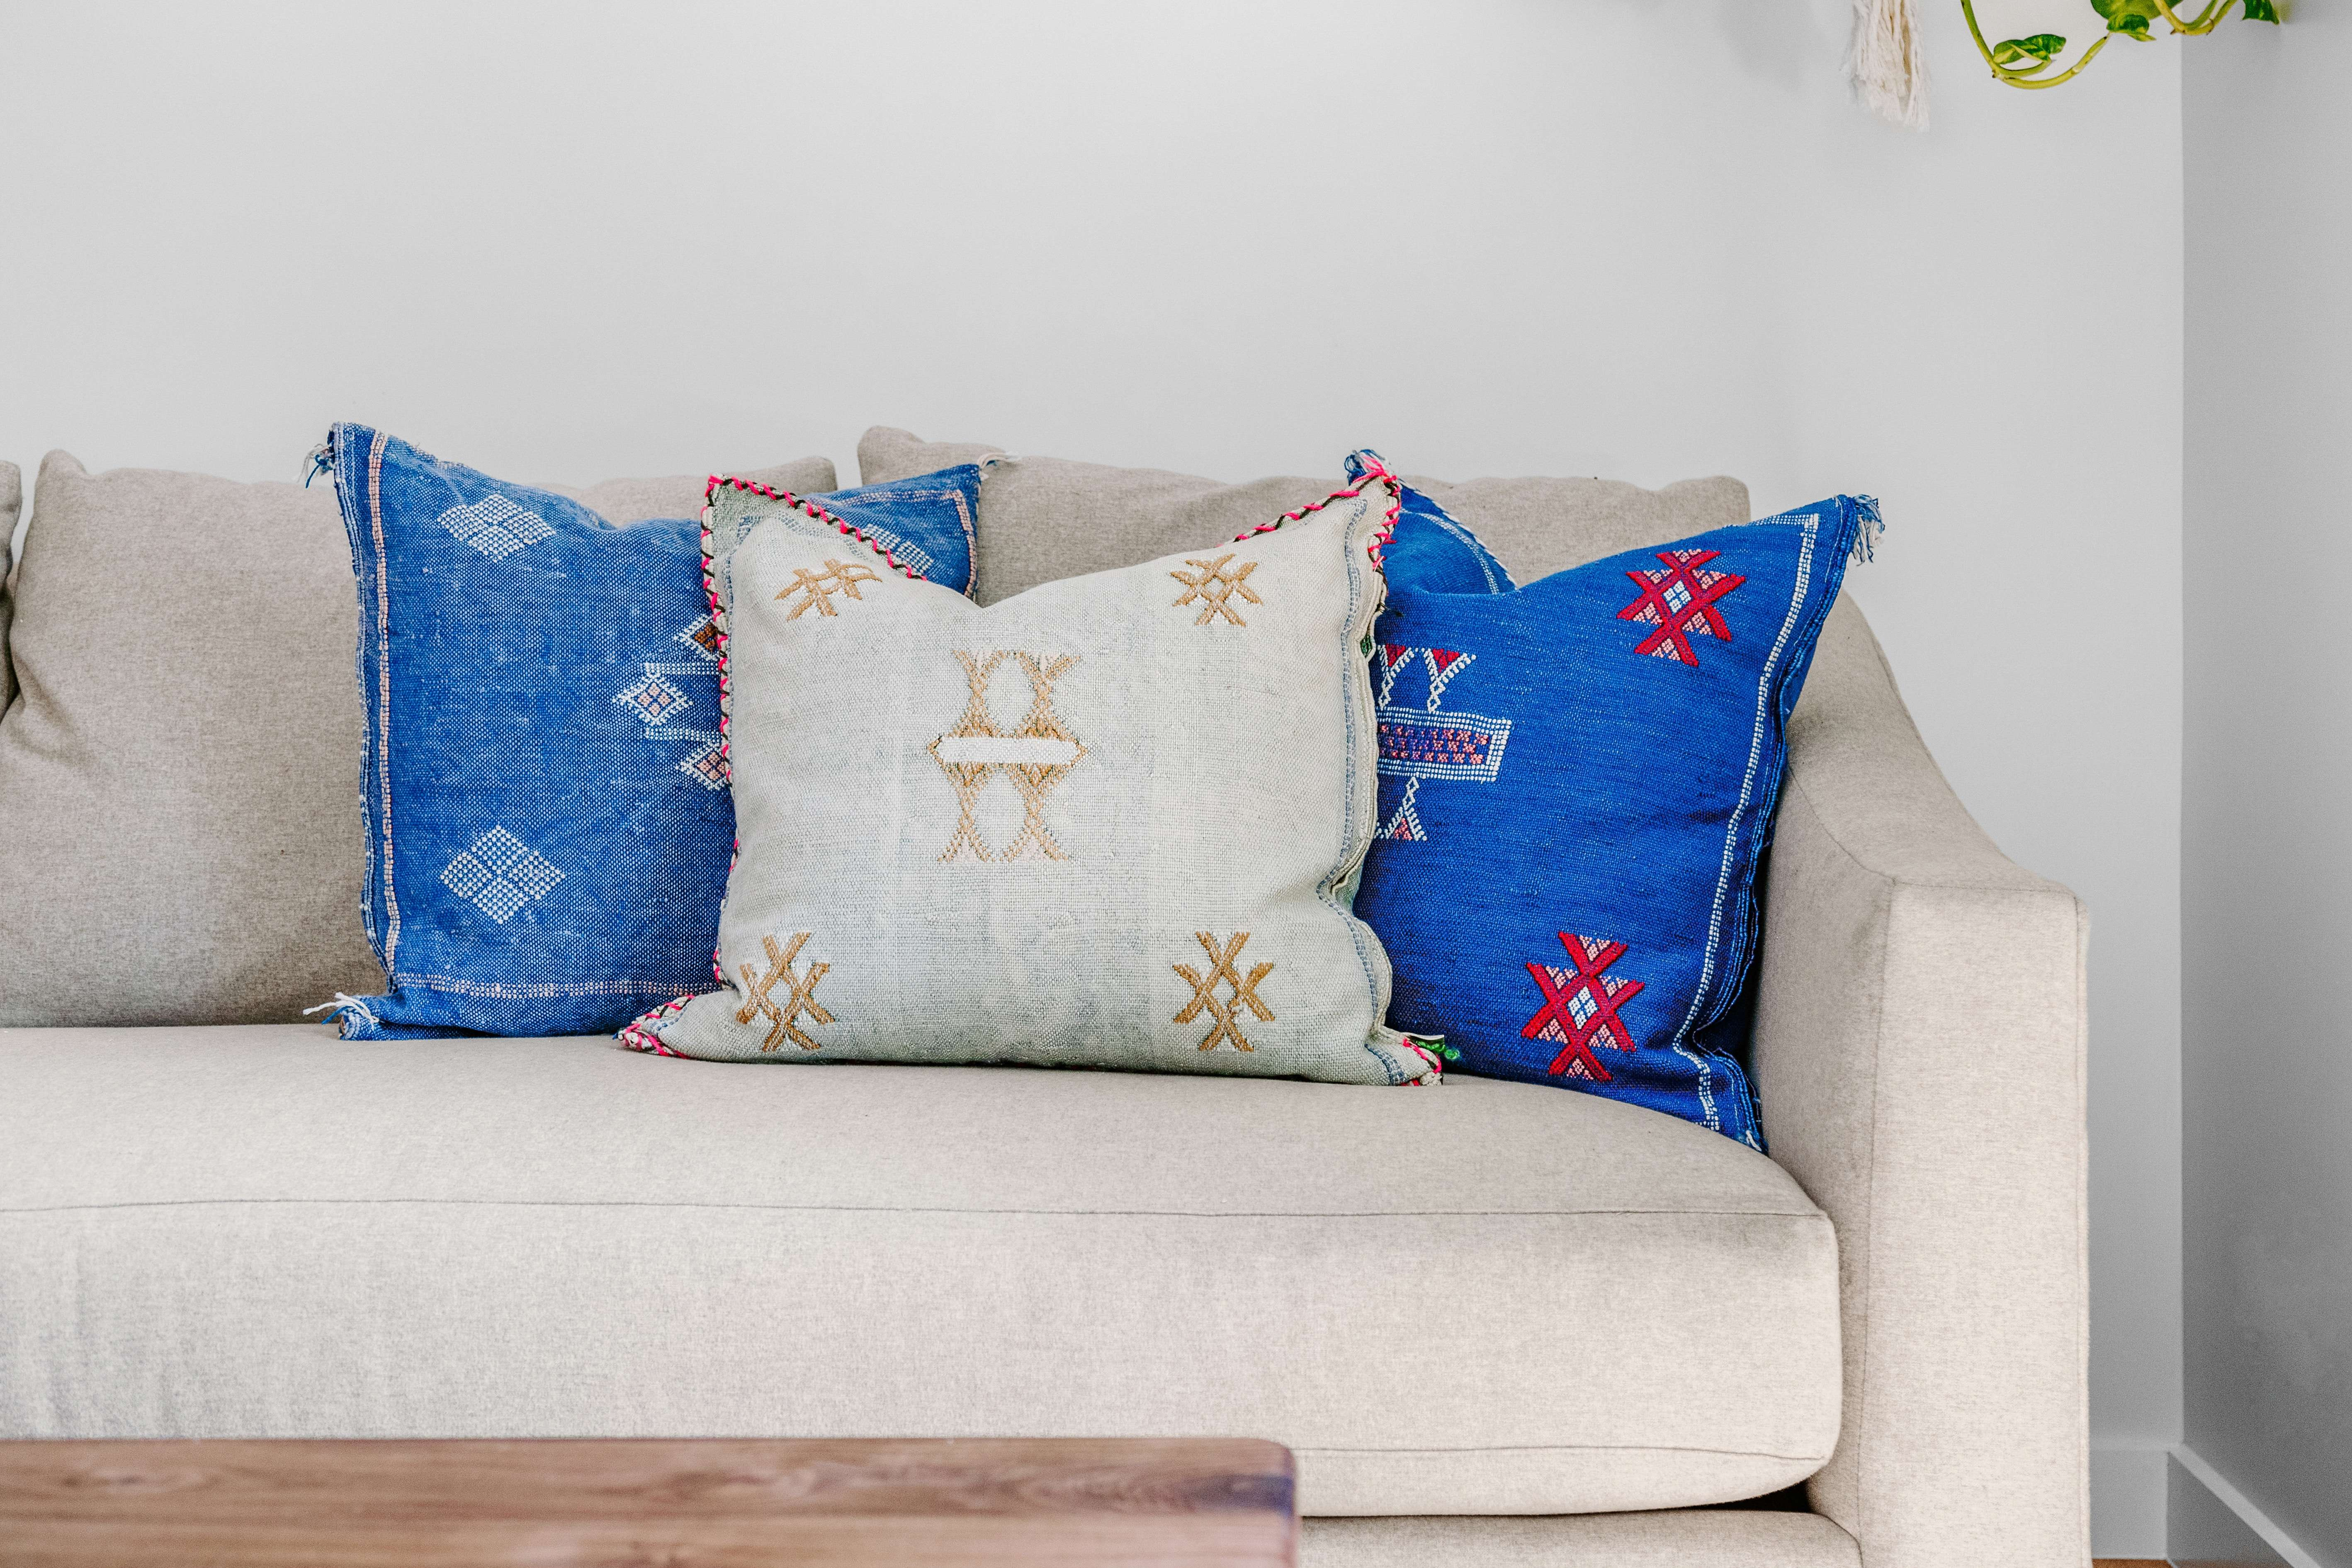 Cushion Covers Budget Home Decor Vibrant Cushion Covers That Suit Every Budget Most Searched Products Times Of India